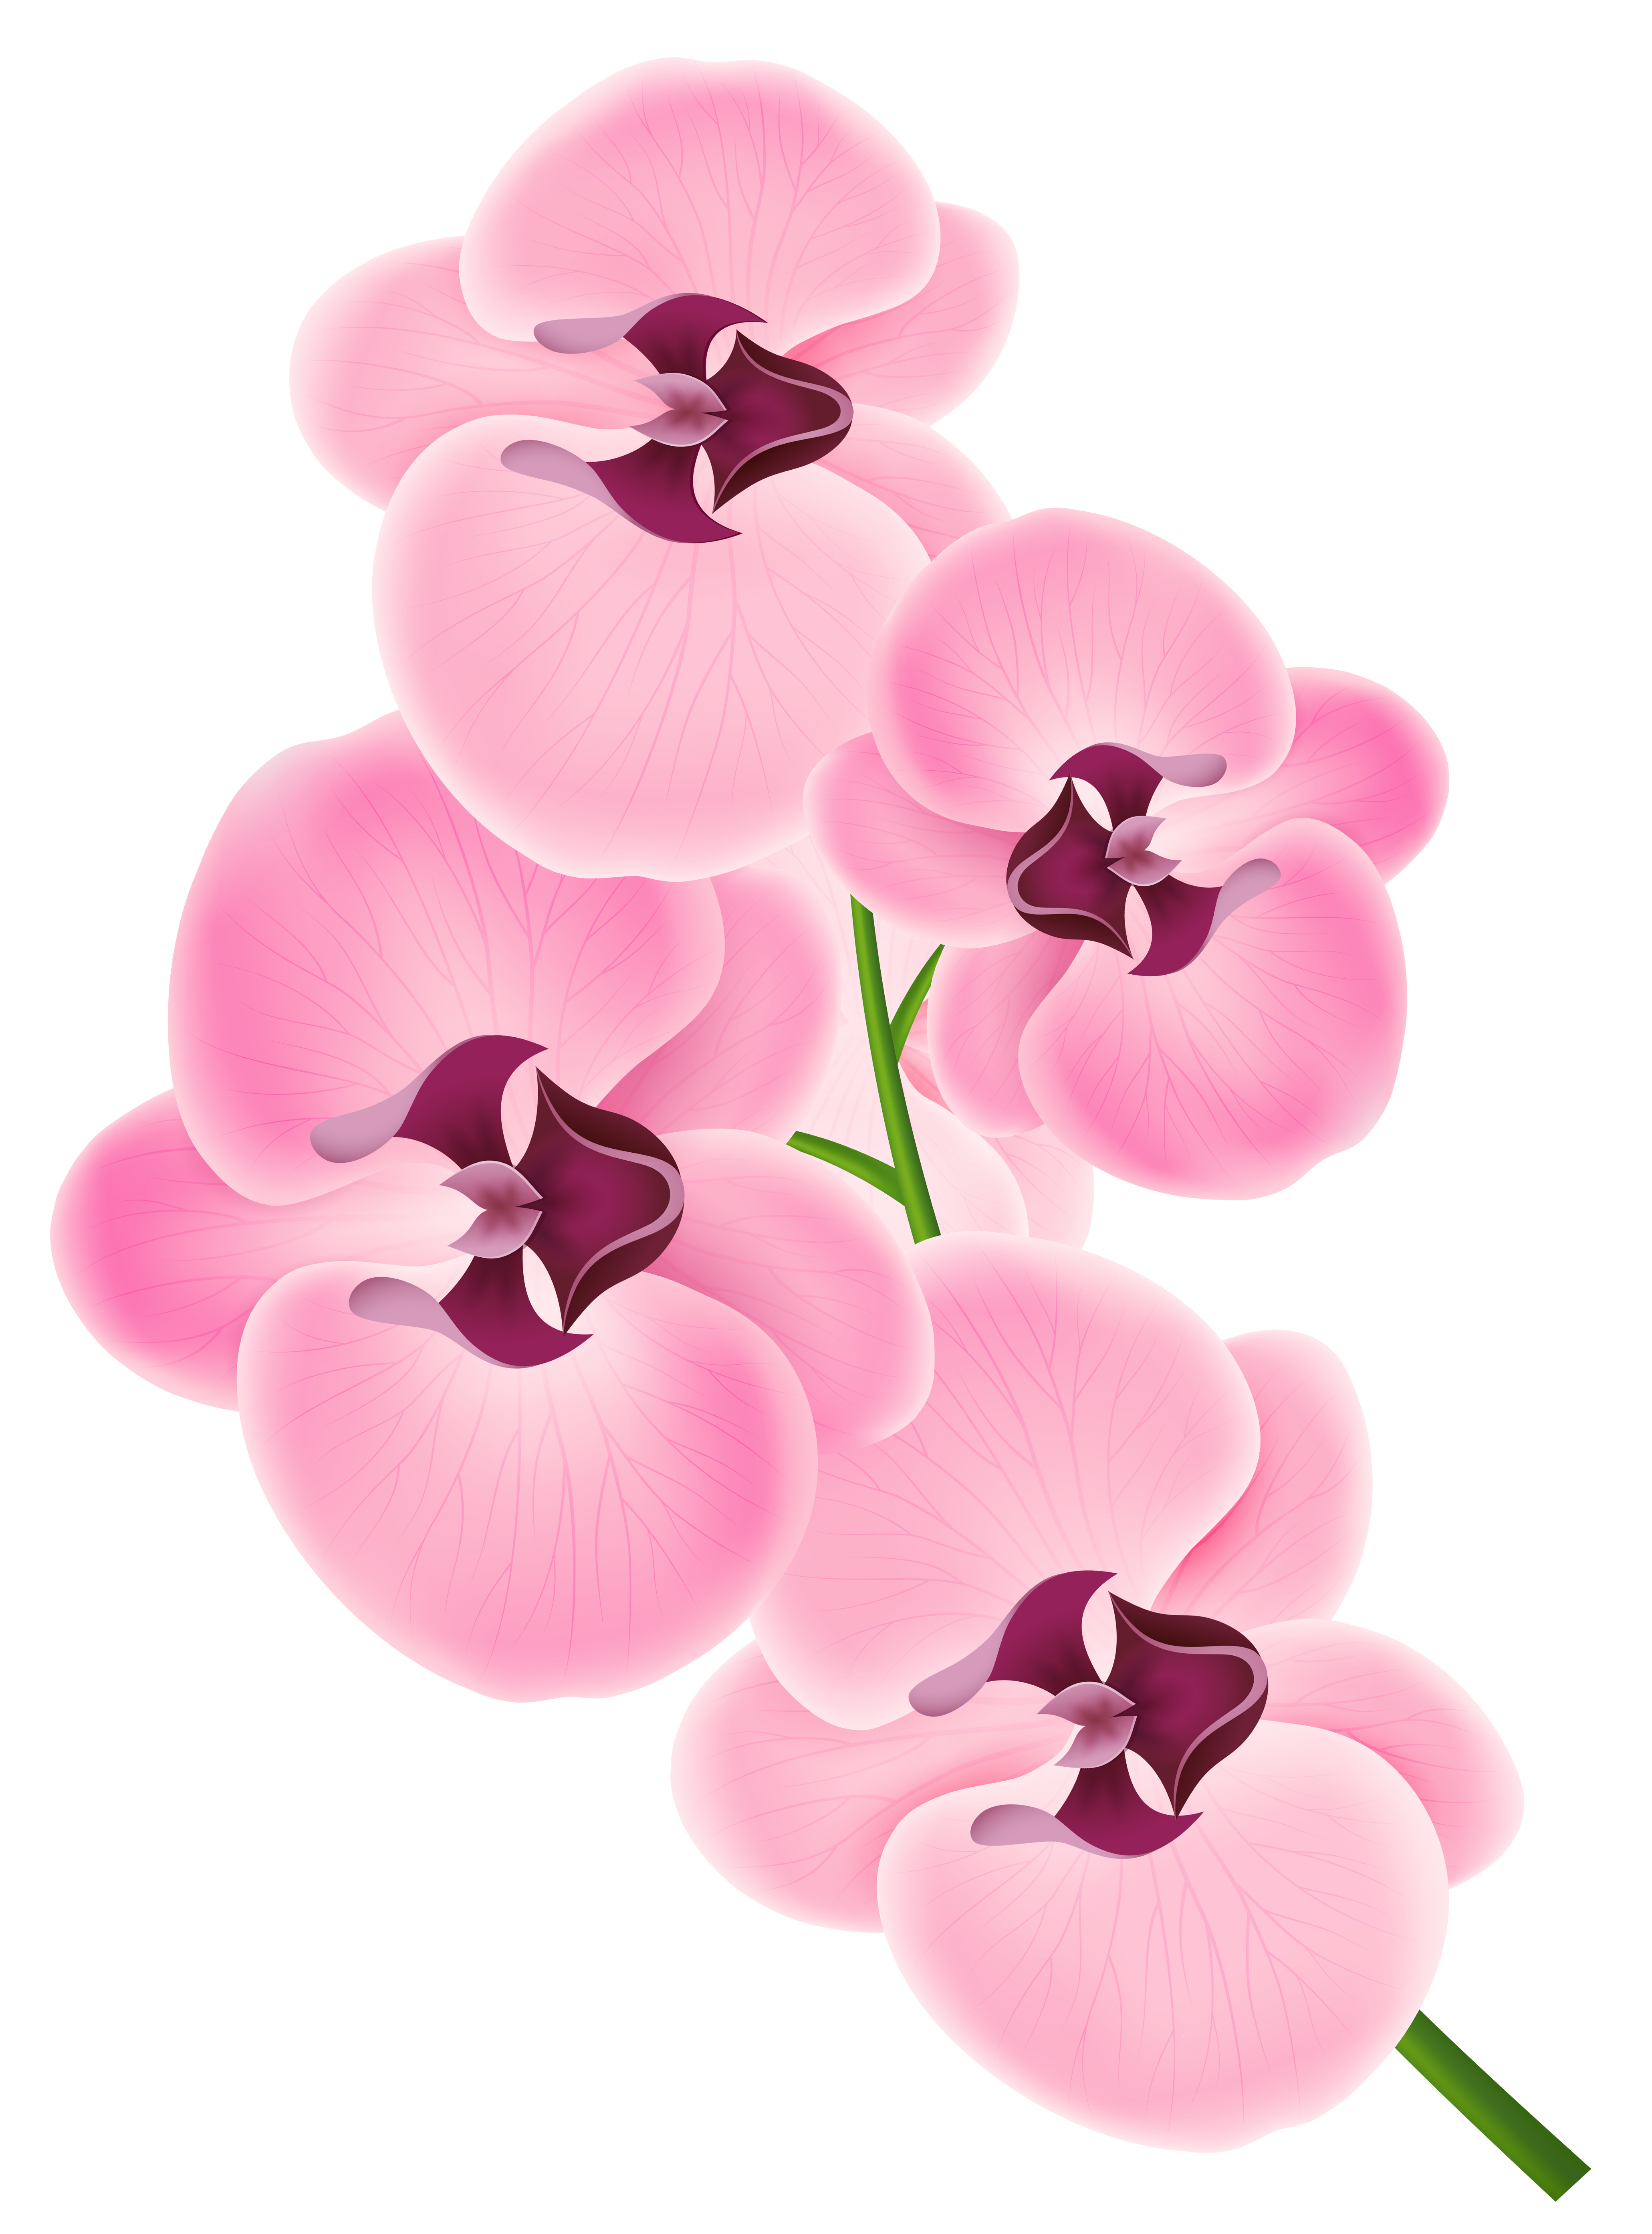 clipart royalty free download Free cliparts download clip. Orchid clipart